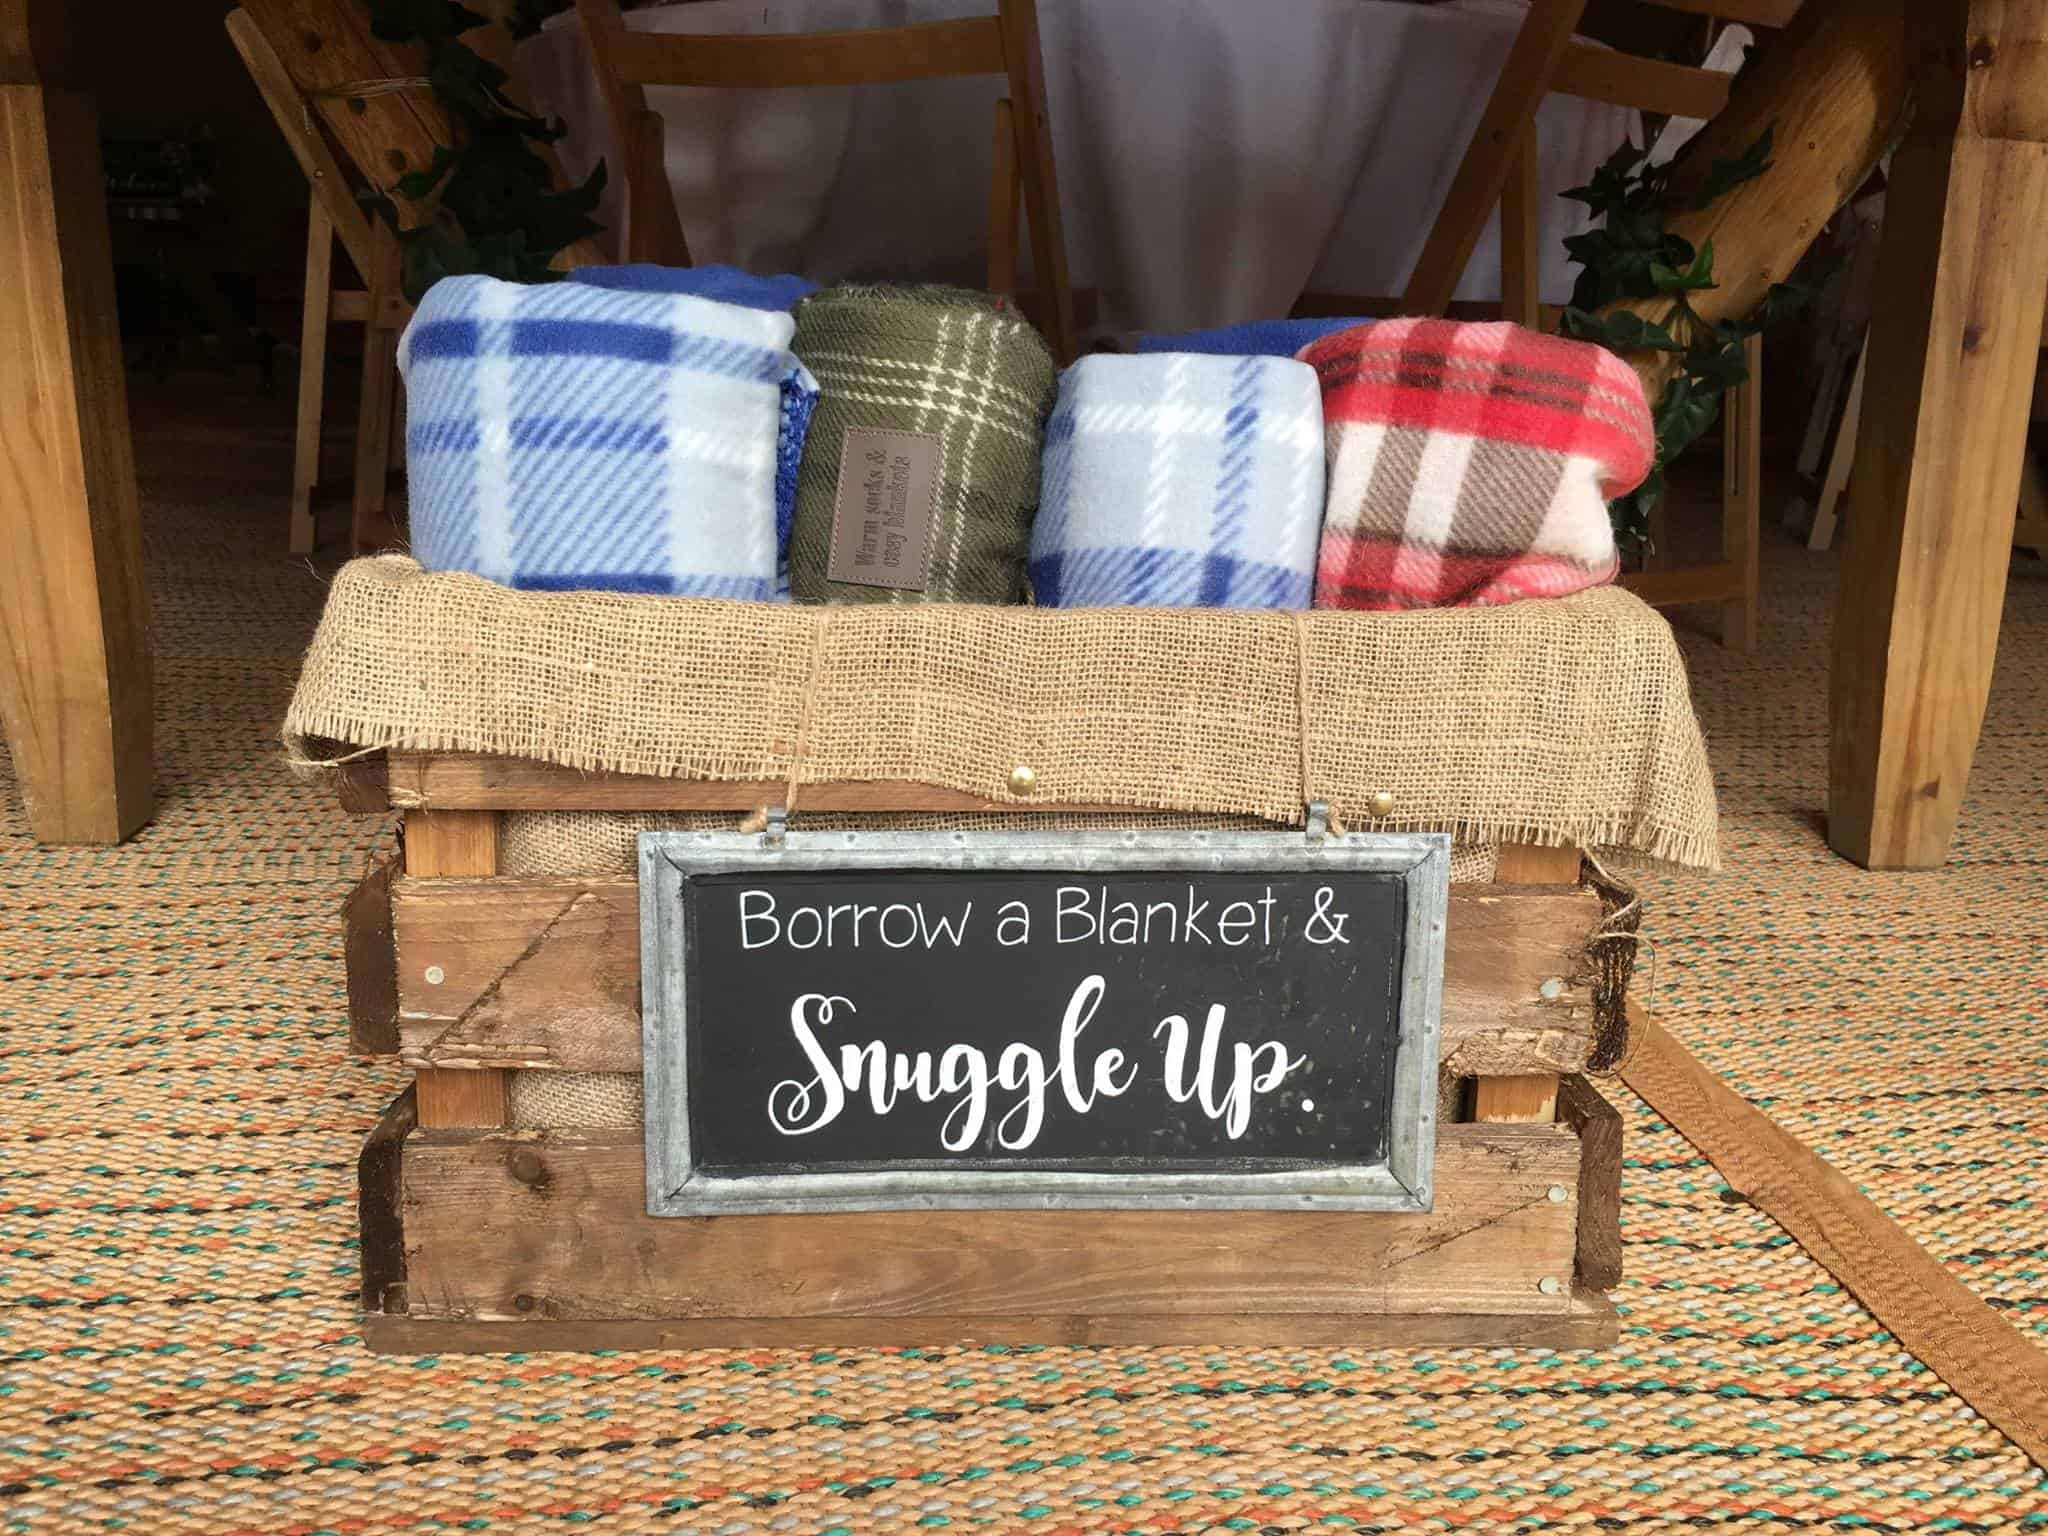 Snuggle Up Blankets - Woodland themed styling by The Rustic Wedding Company